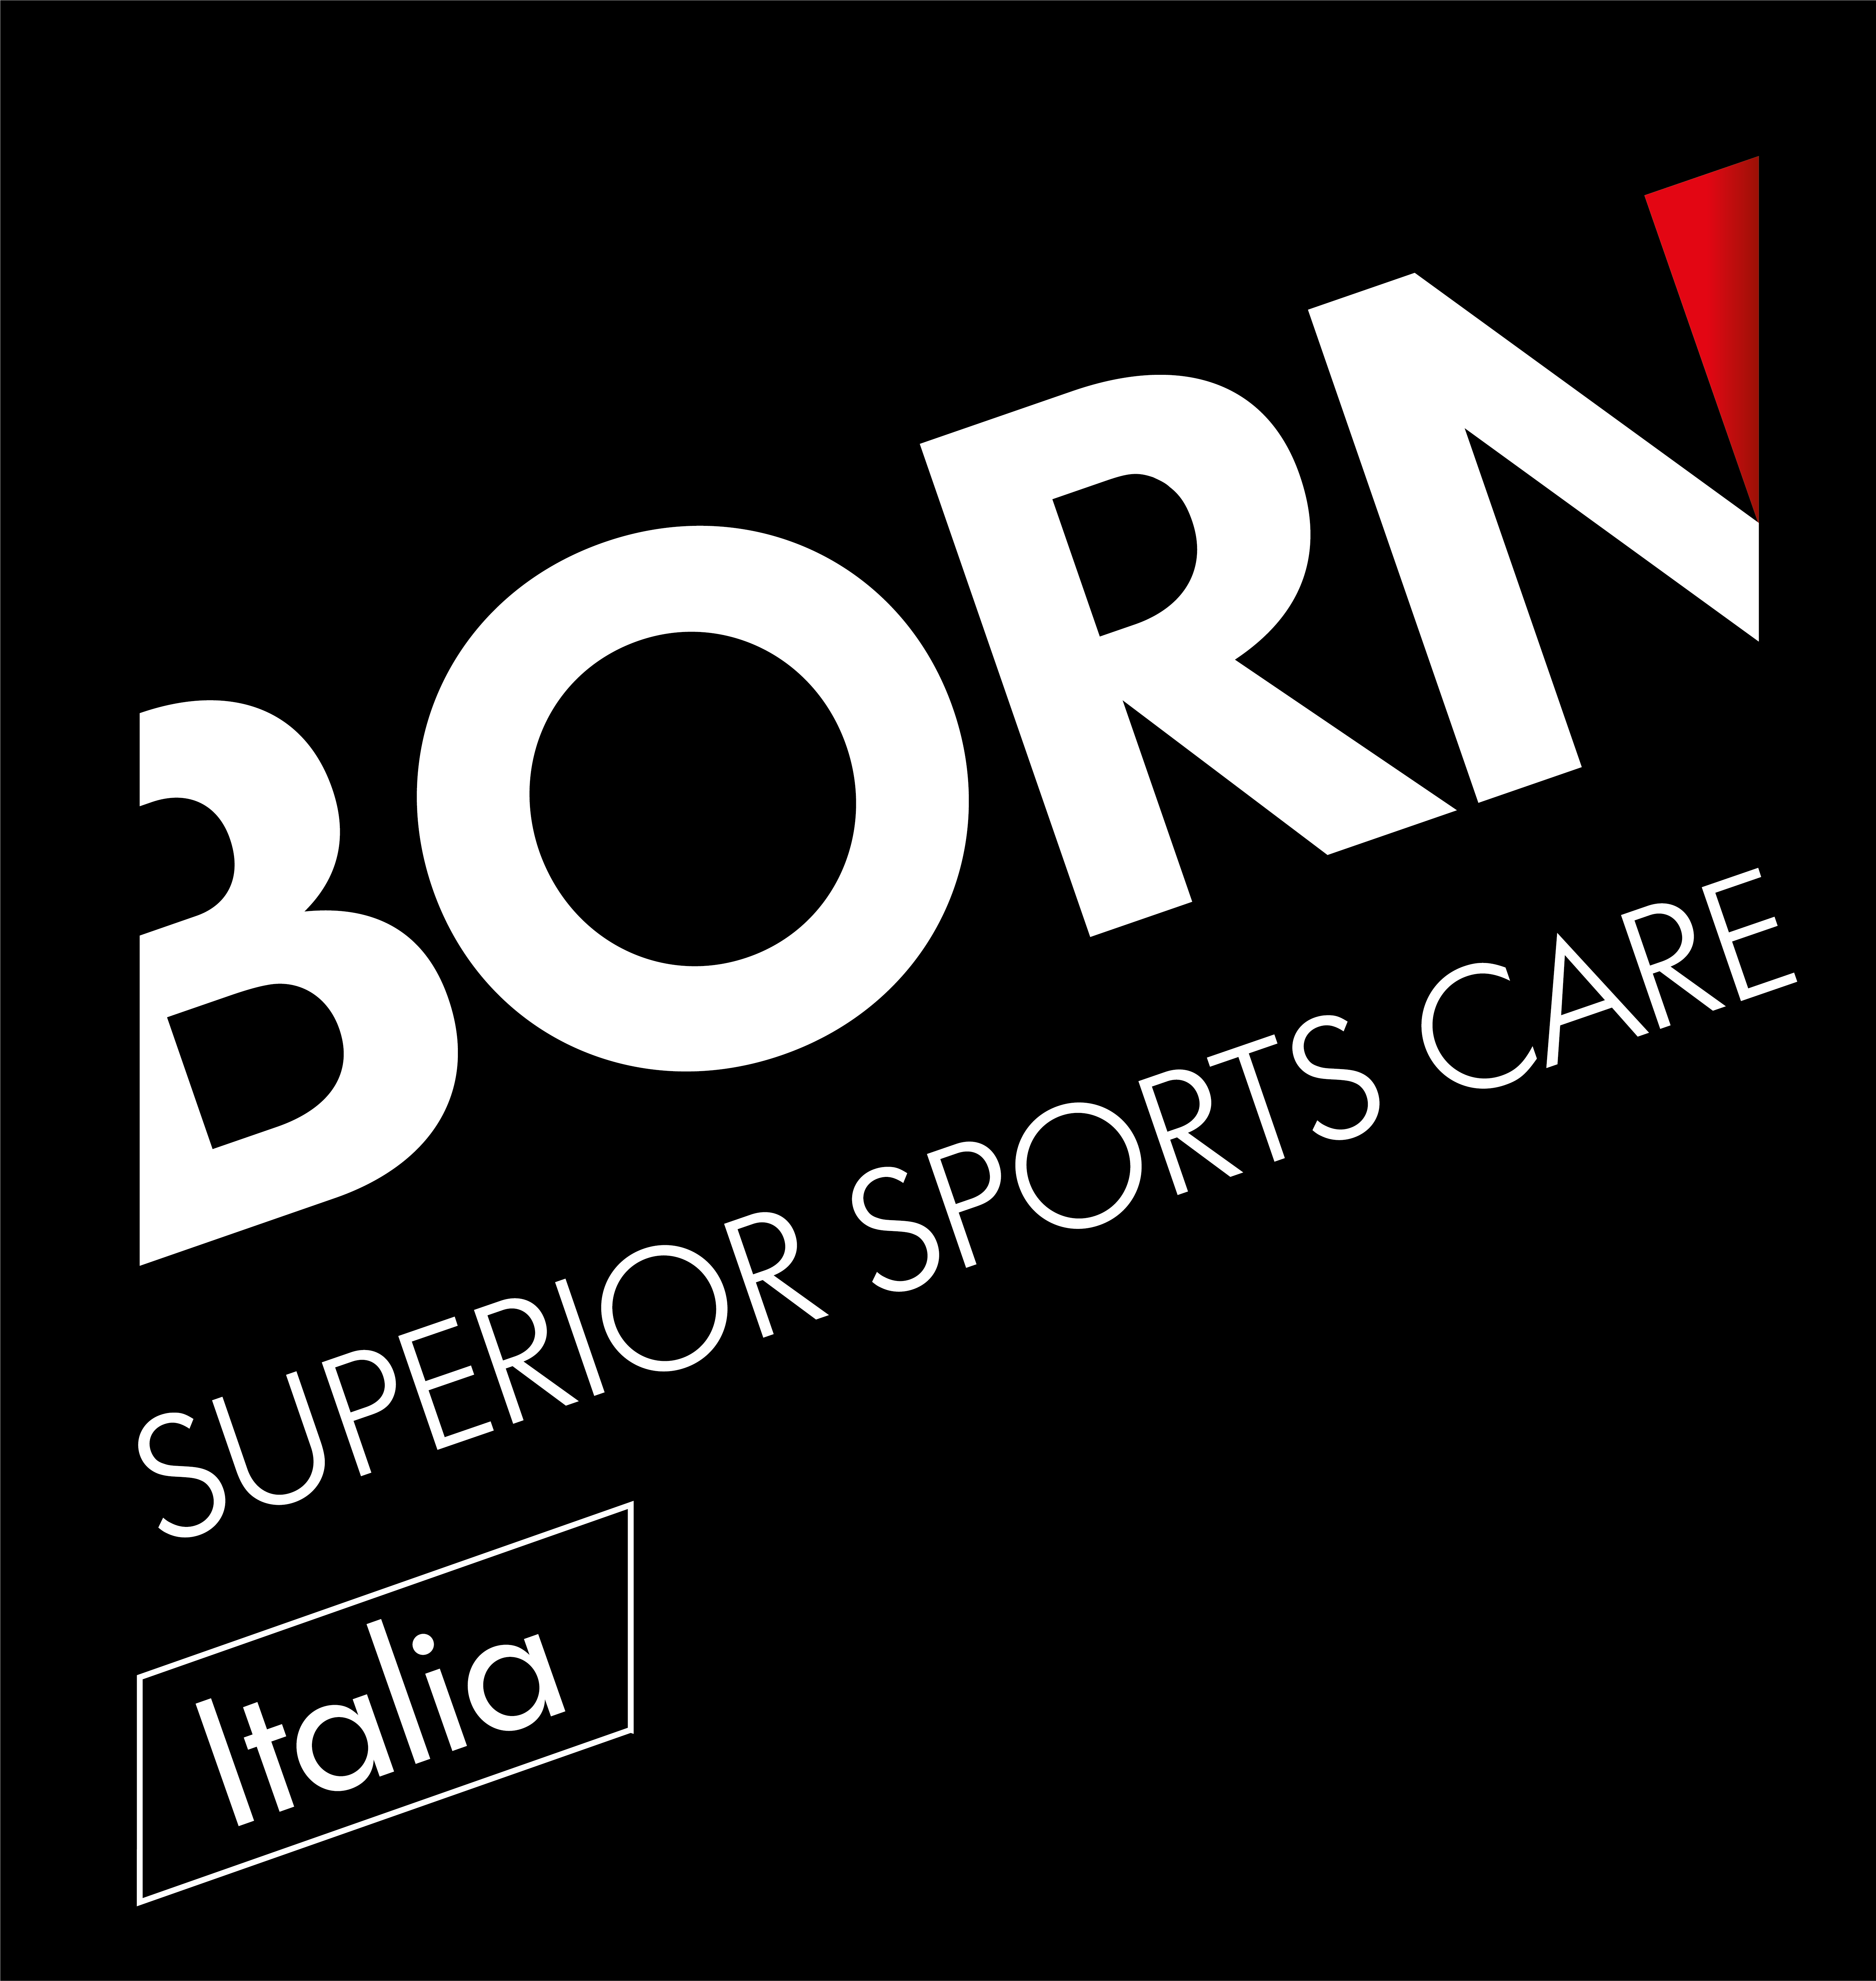 Born Superior Sports Care Italia